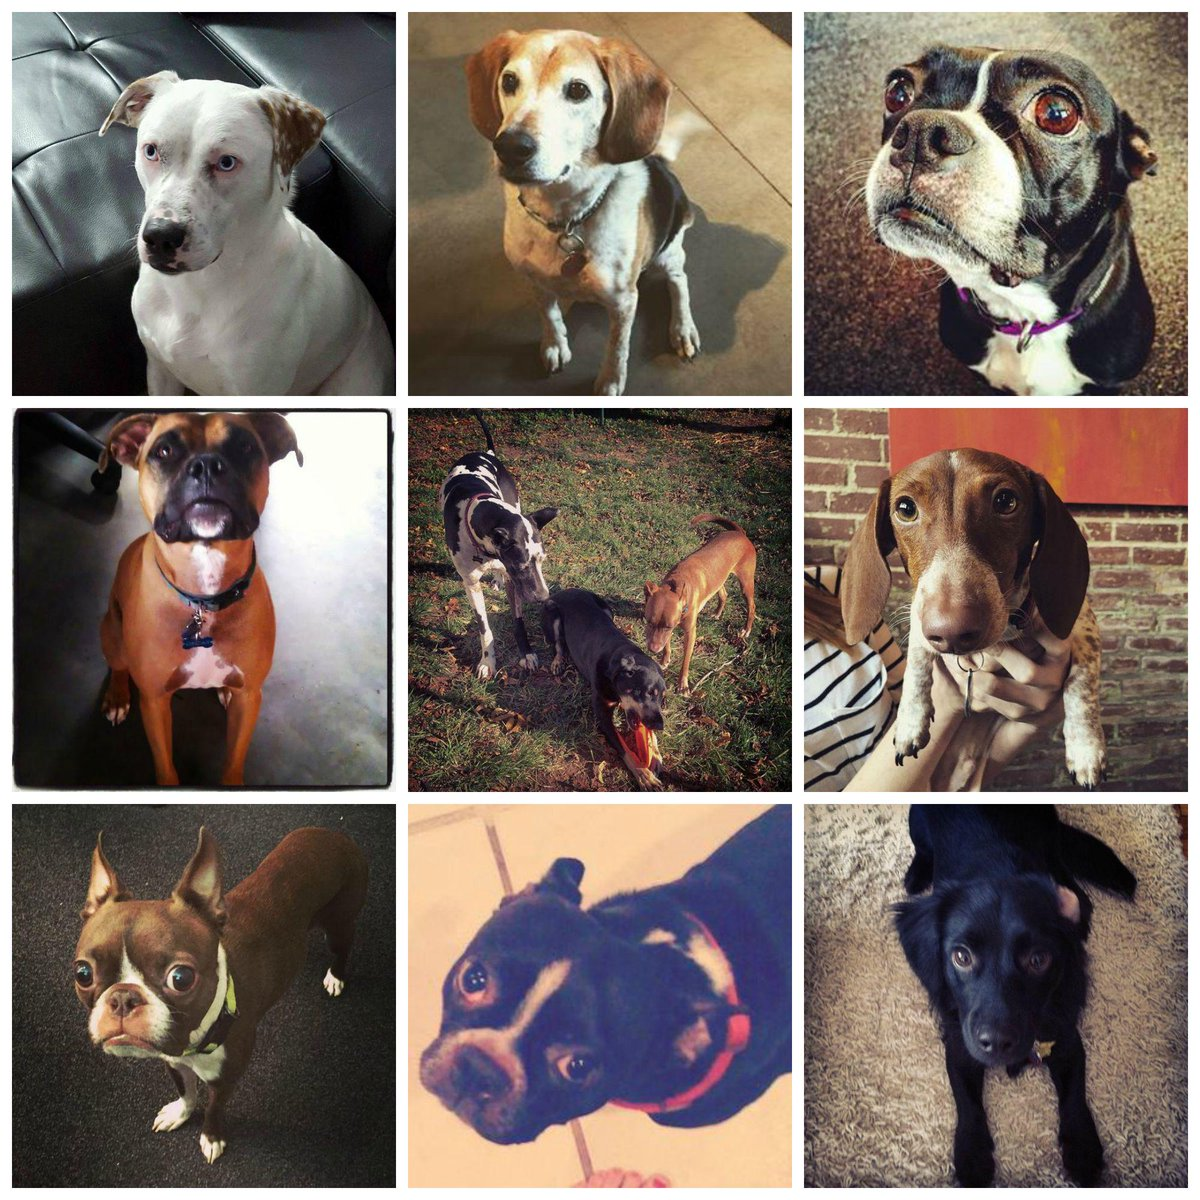 Every office needs a pup or 11. Happy #NationalDogDay #DogsOfTG ❤️ http://t.co/GiZdFvf7Yf